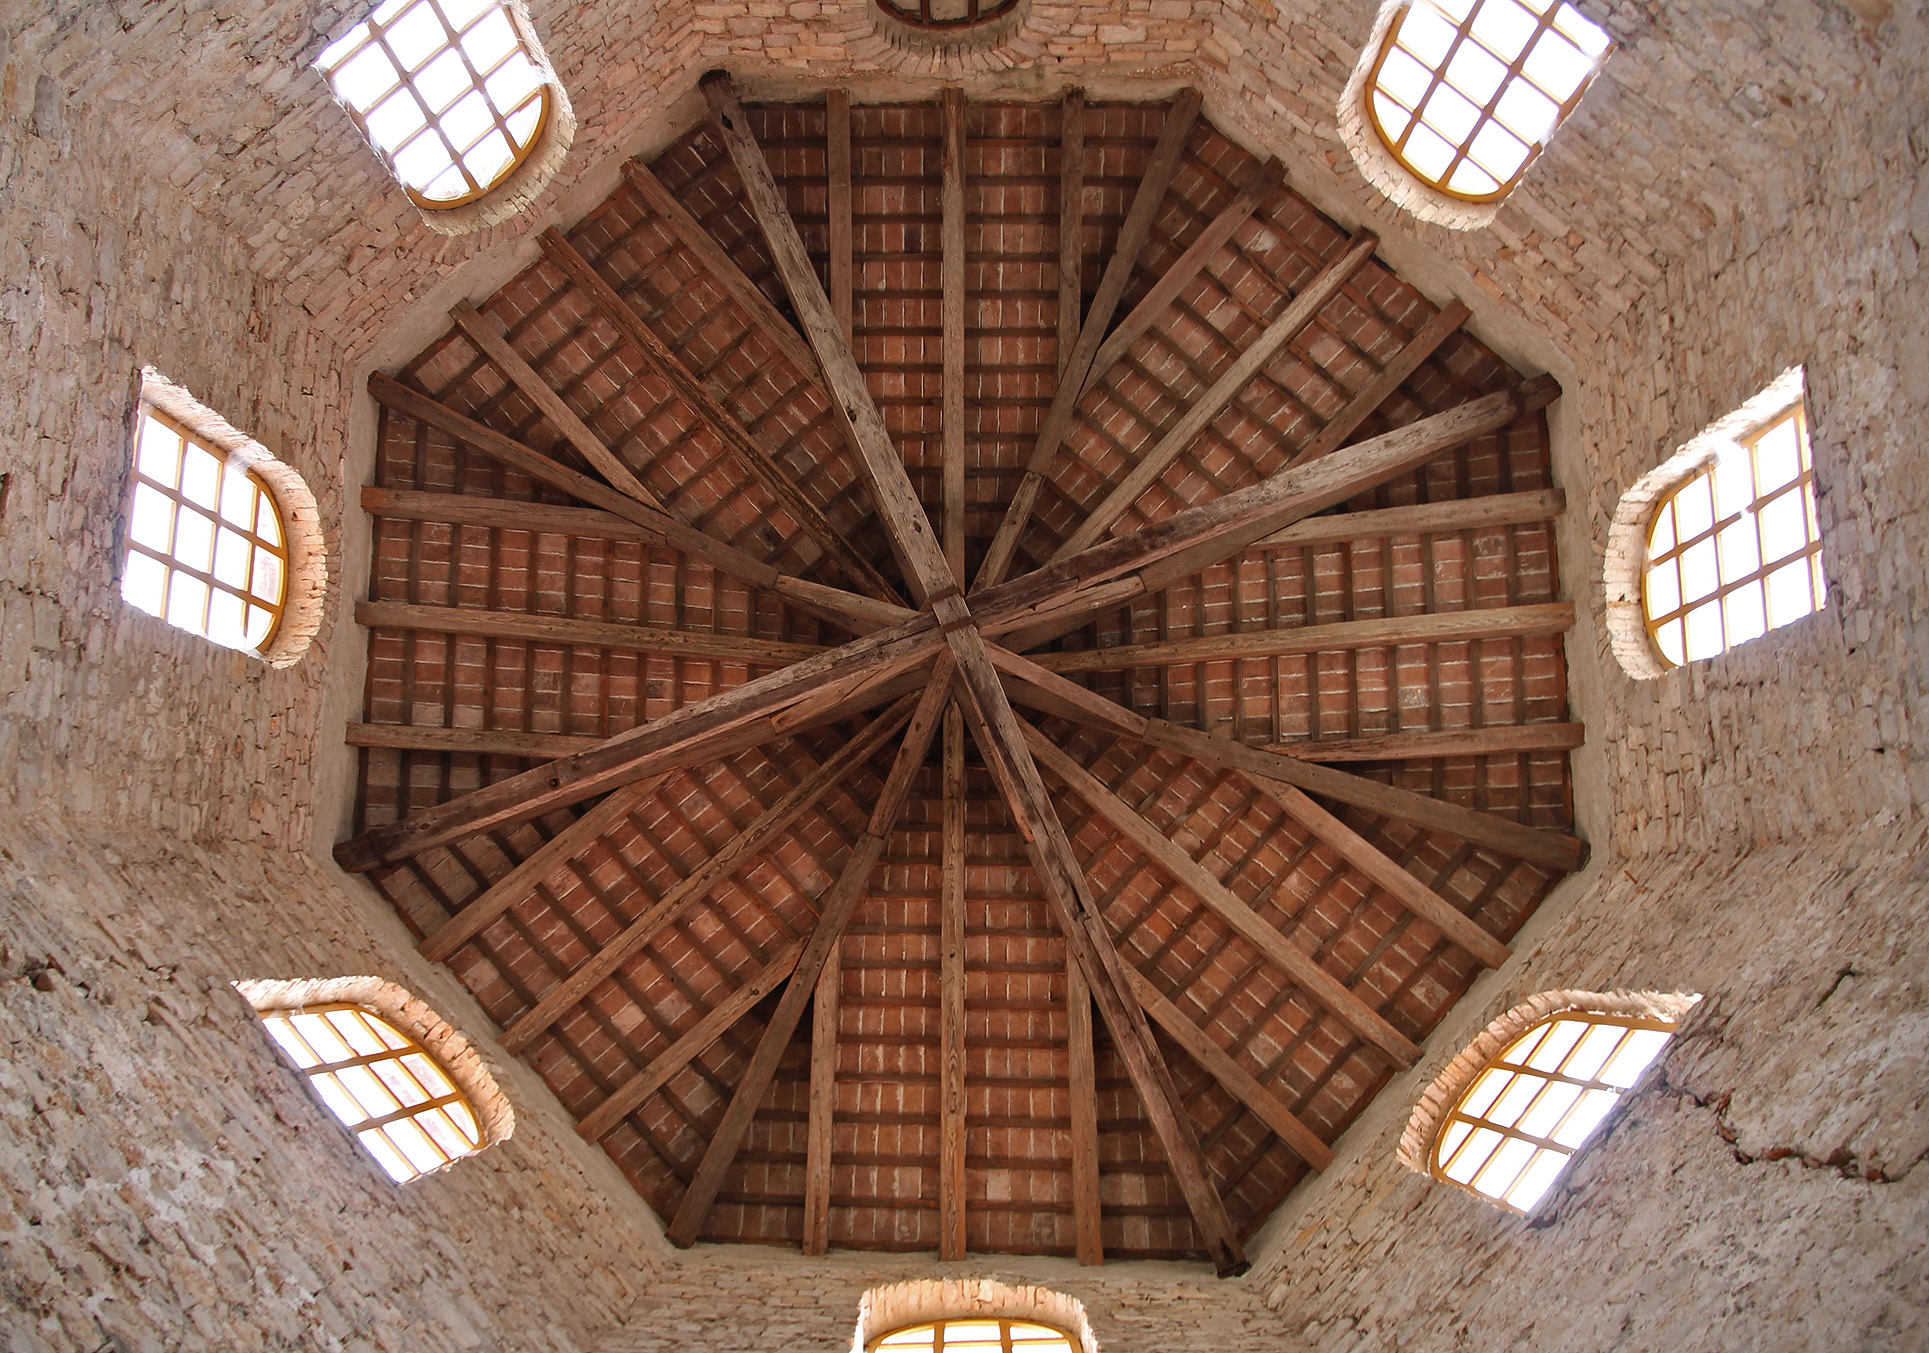 The wooden roof of the baptistery.